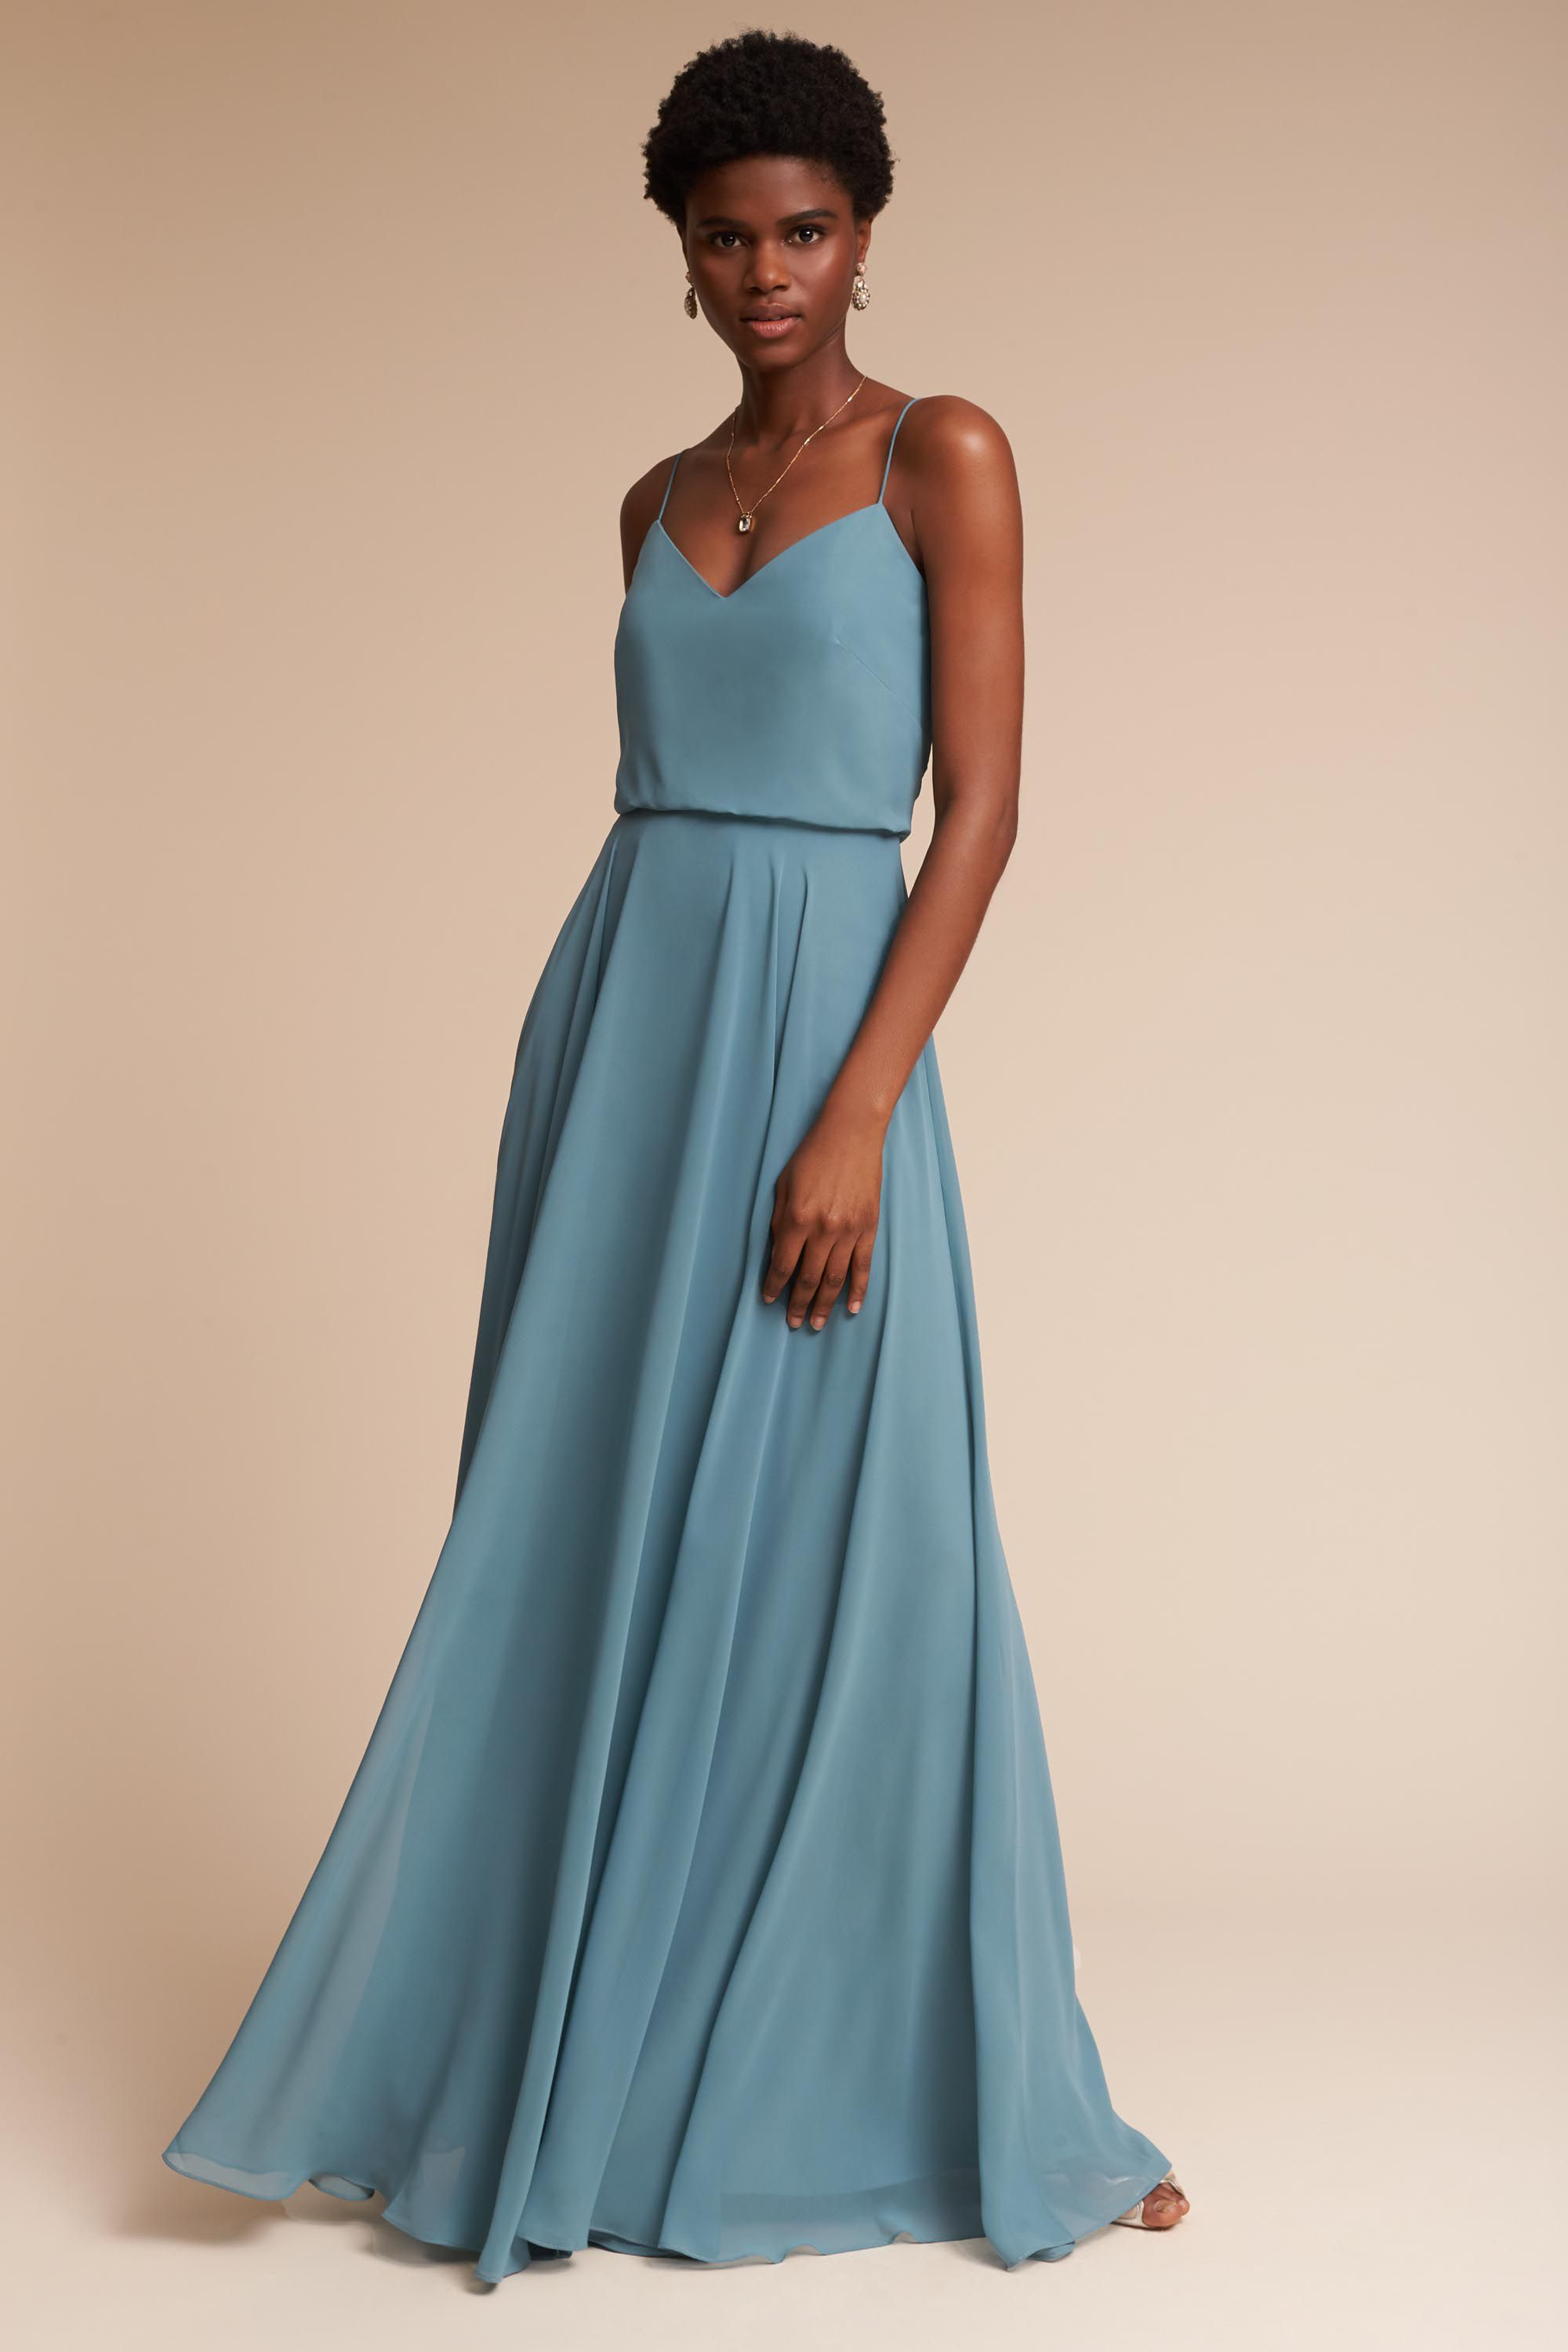 Inesse Dress from @BHLDN | Bridesmaid Dresses | Pinterest | Dress ...